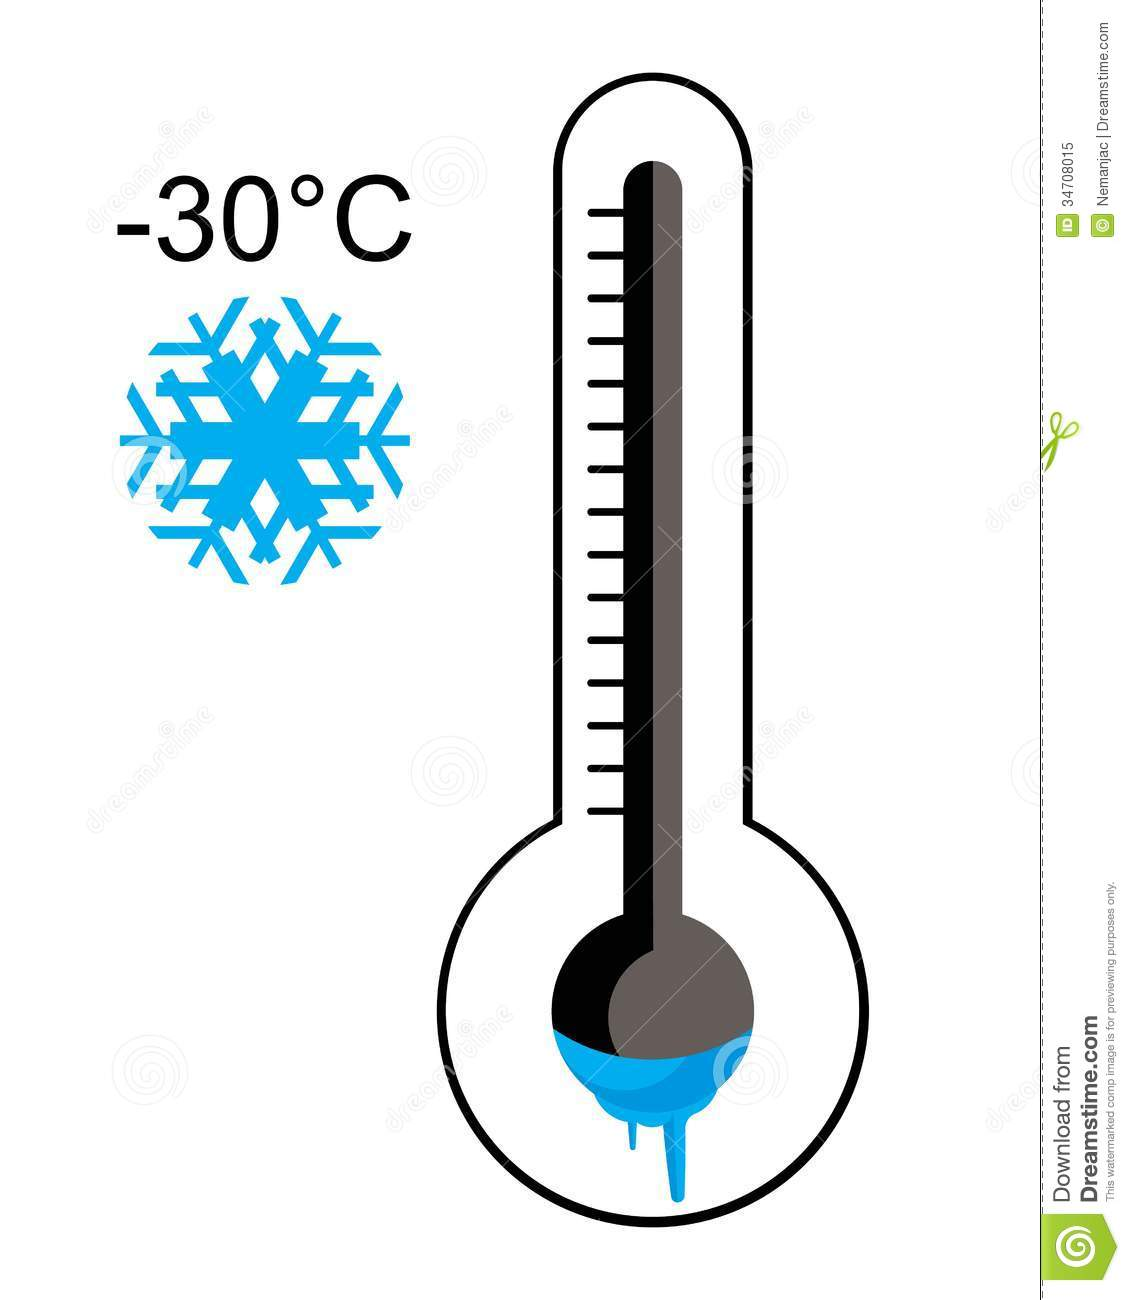 Ice Cold Thermometer Royalty Free Stock Photo - Image: 34708015